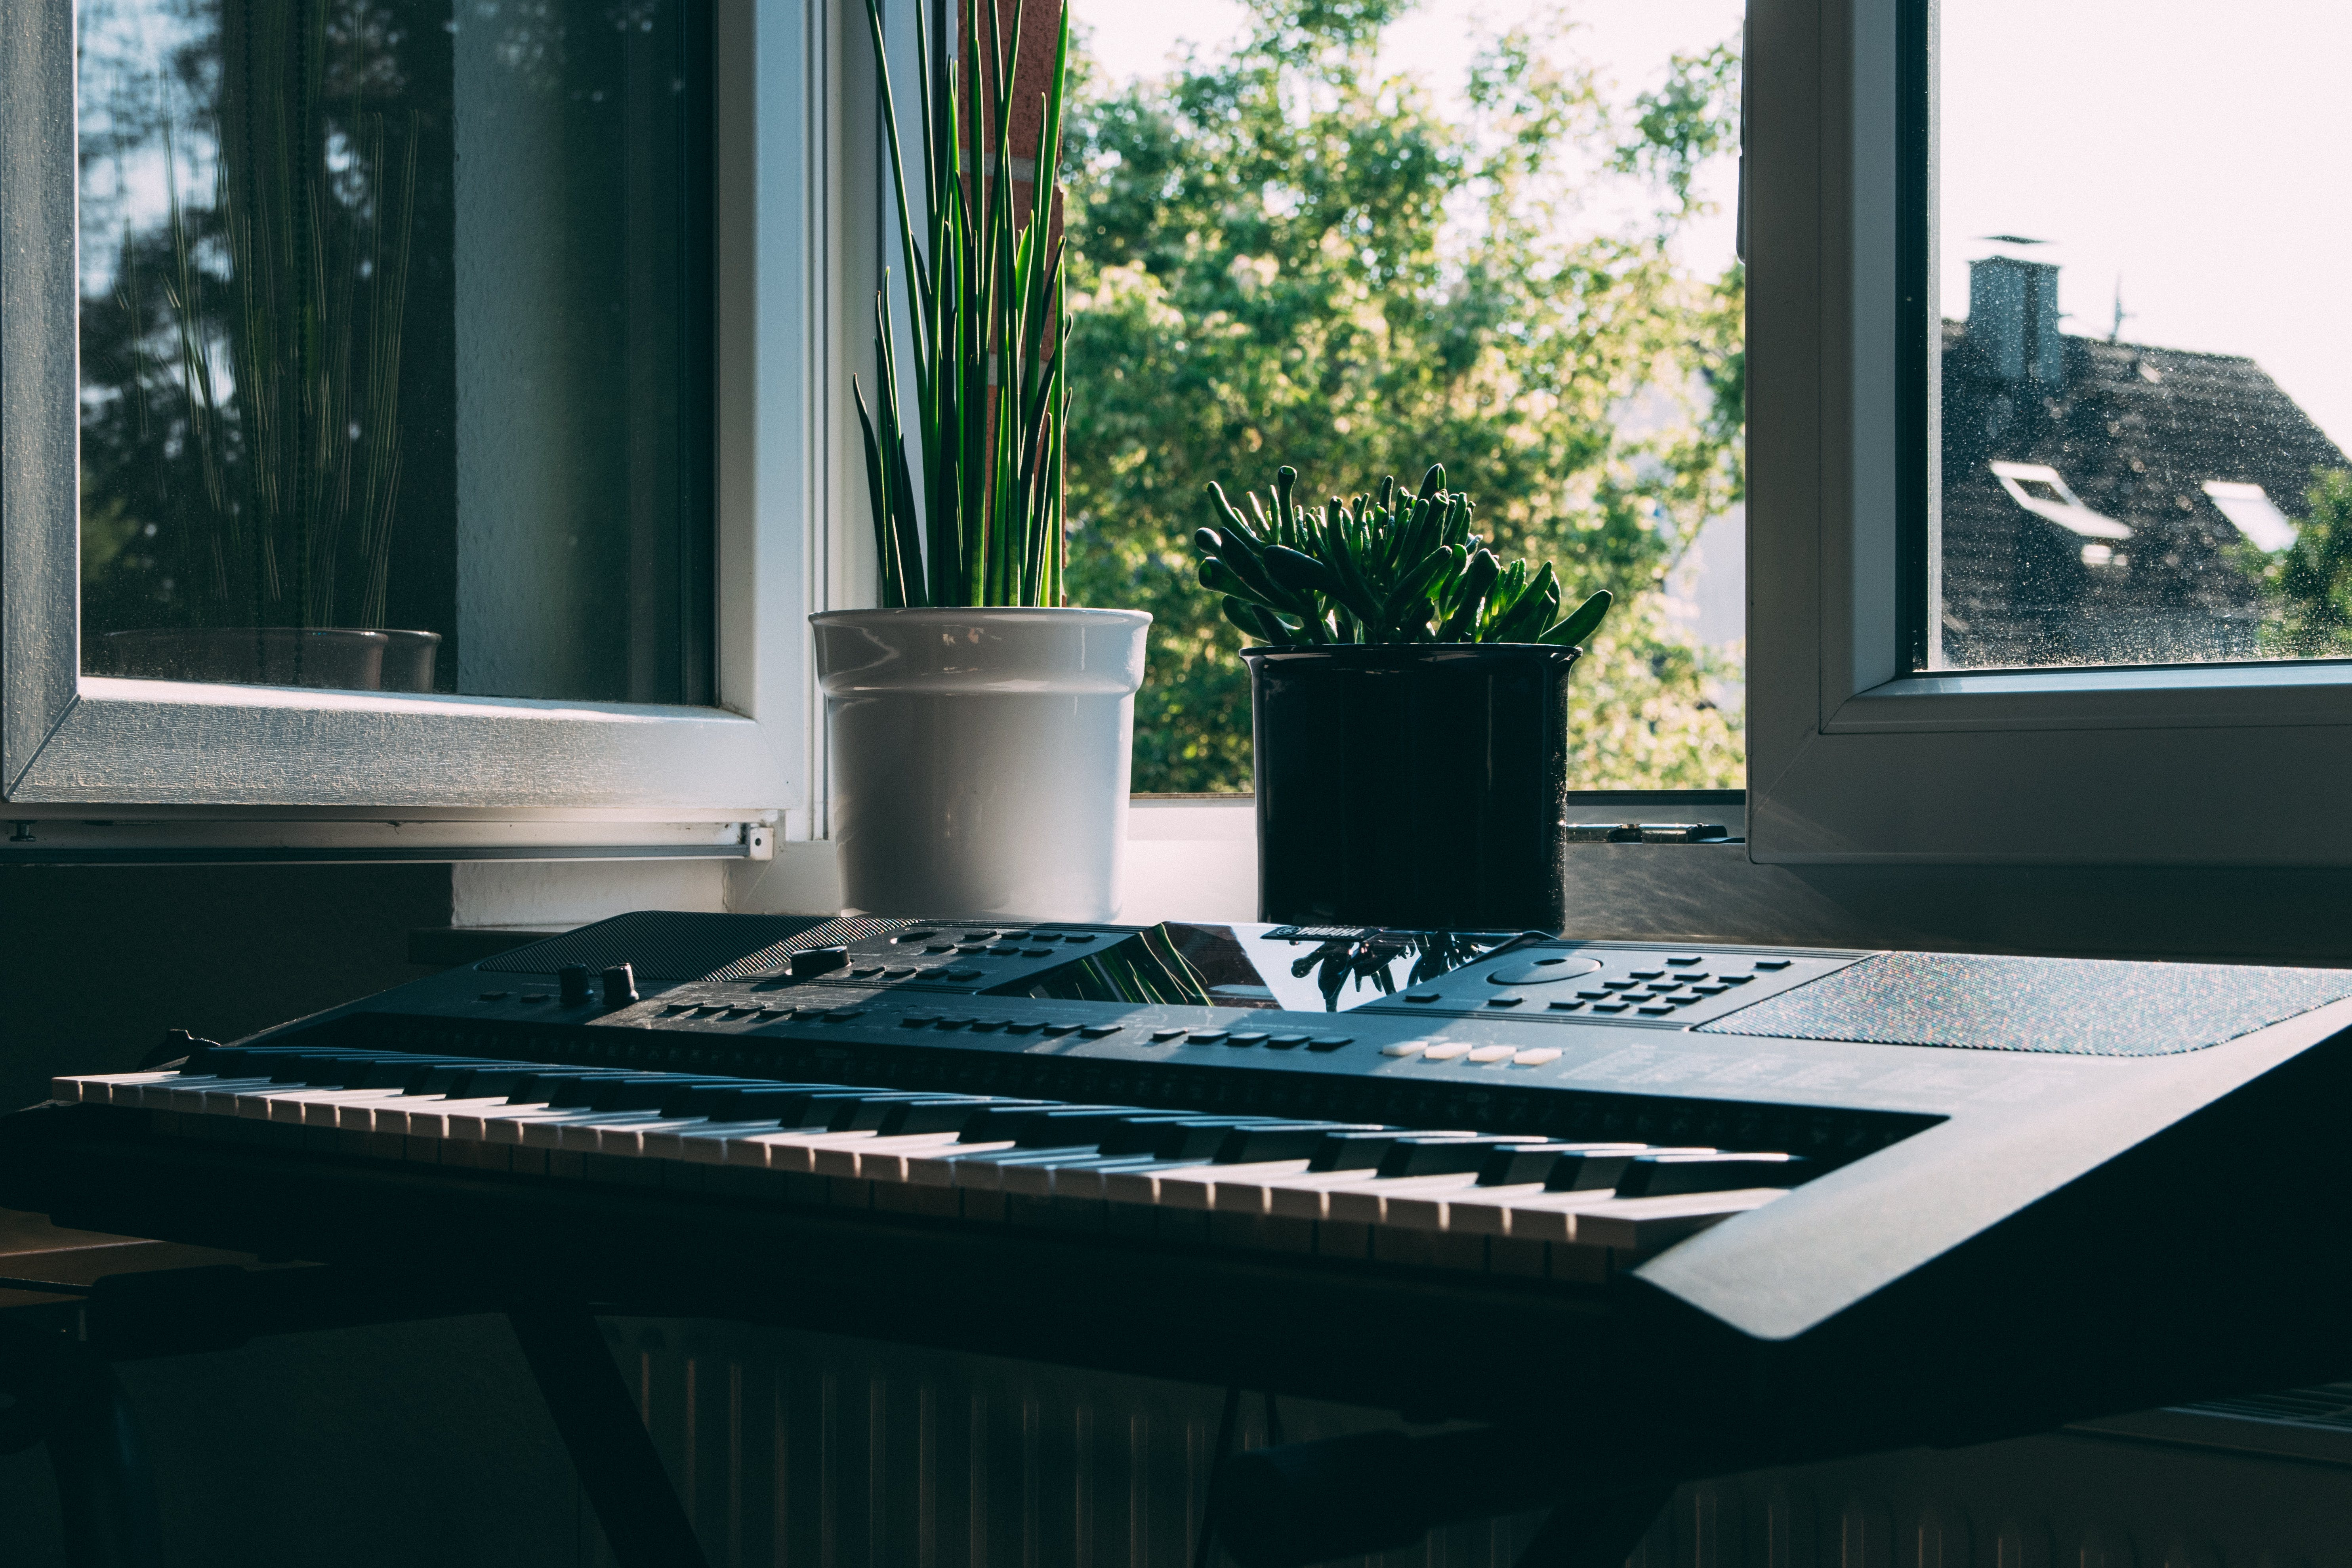 Black Electronic Keyboard Near Window